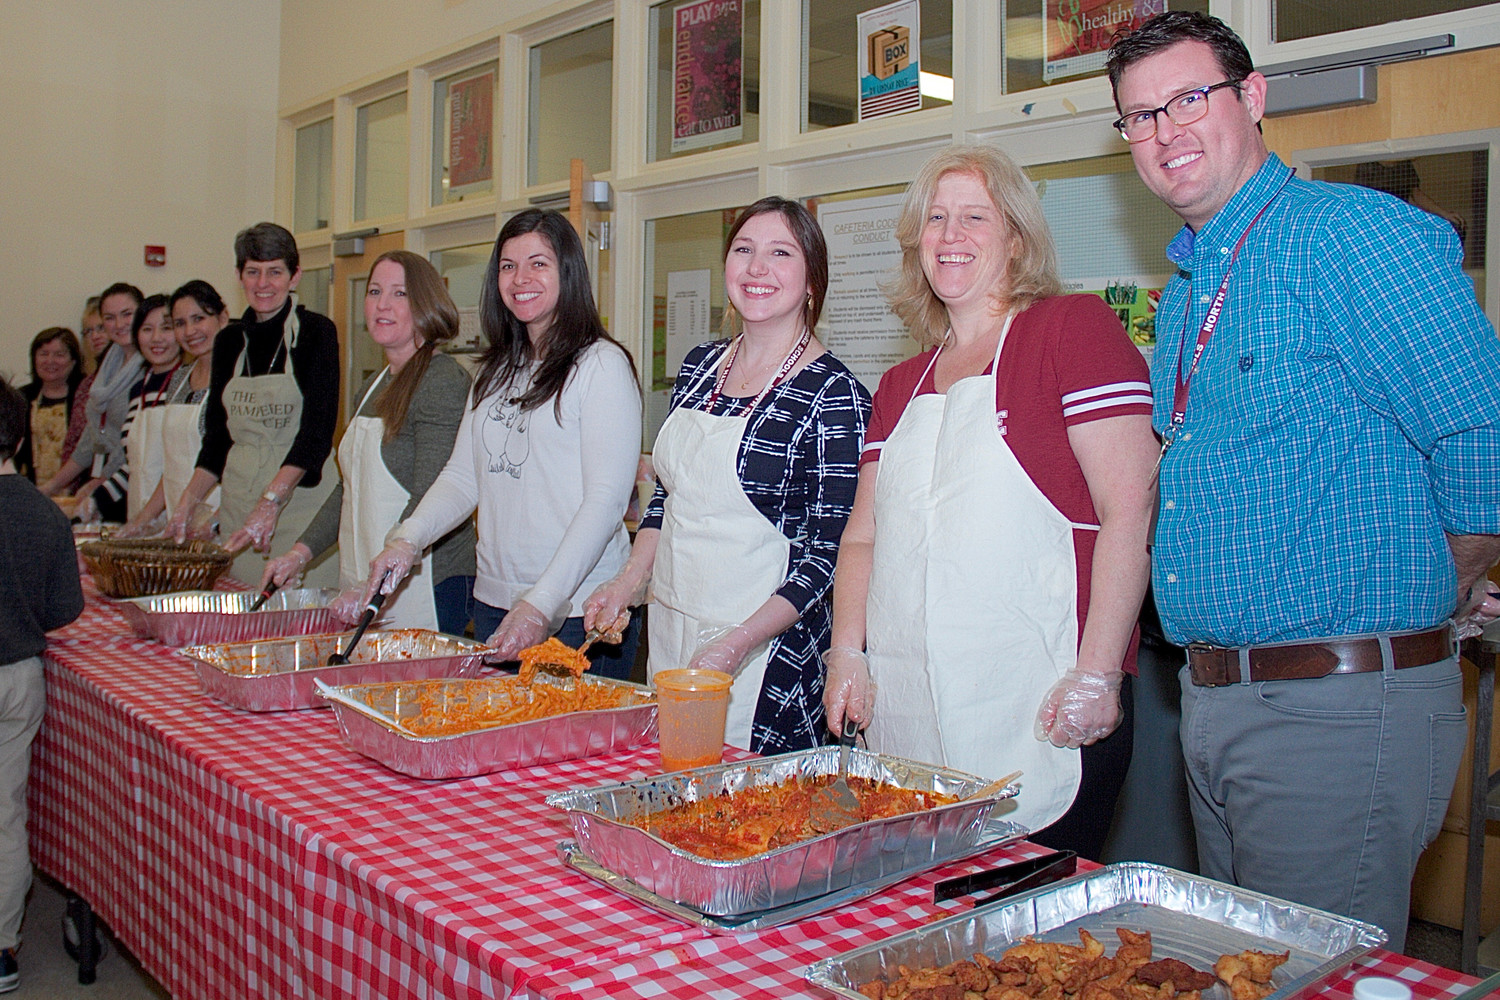 Glen Head School's faculty served up a feast of food for game night.